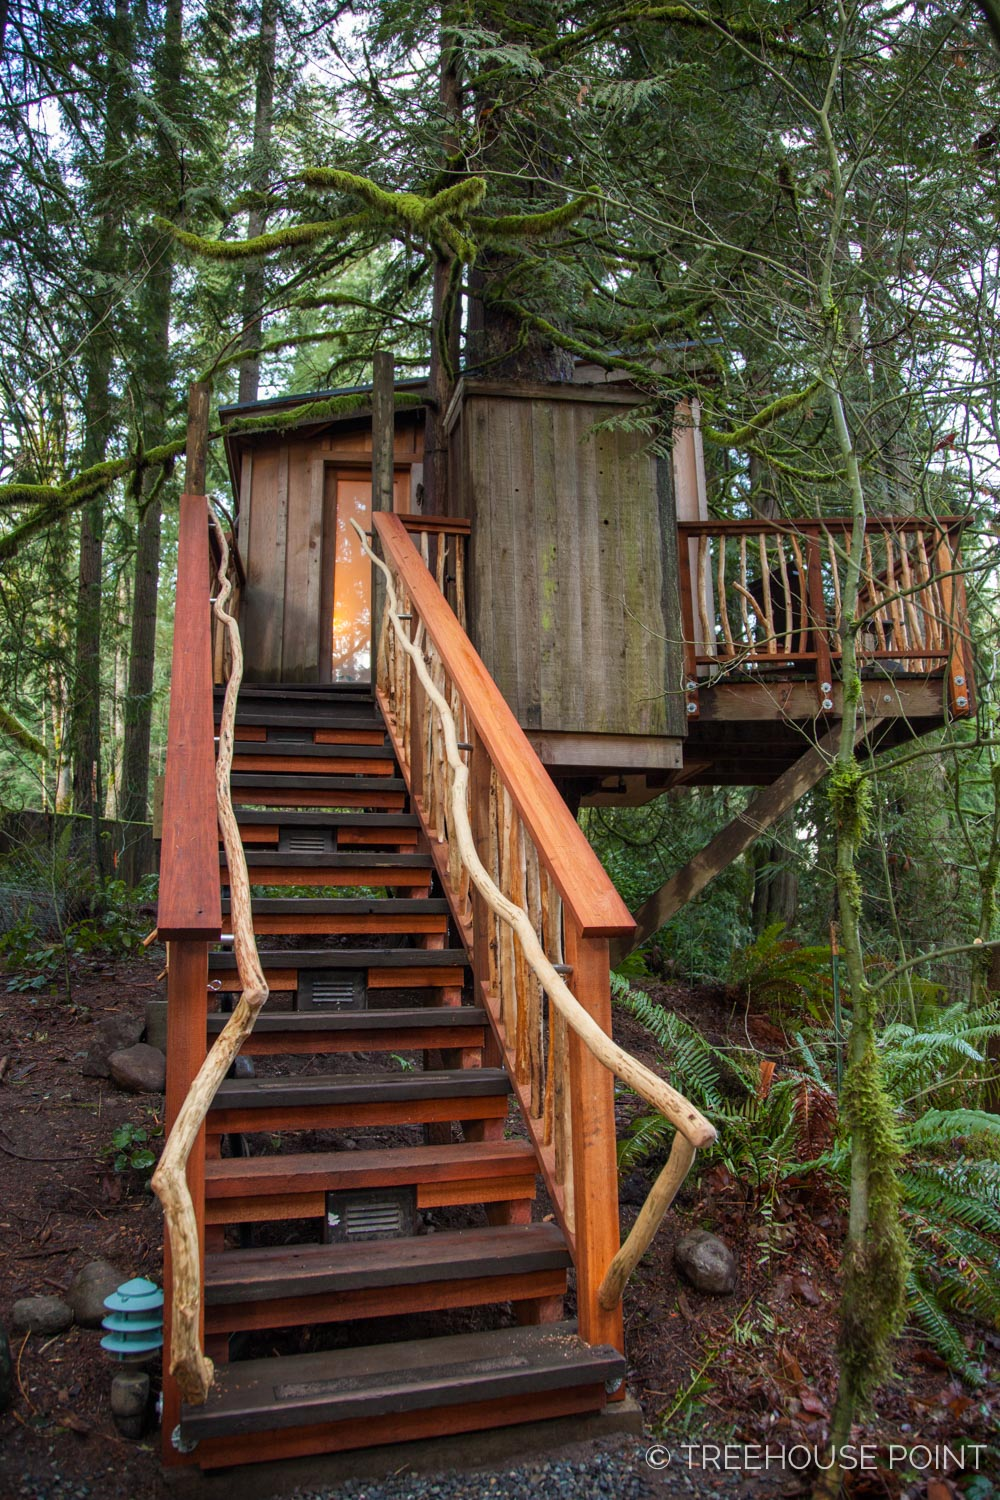 Nest_TreeHouse_Point_2018-20.jpg